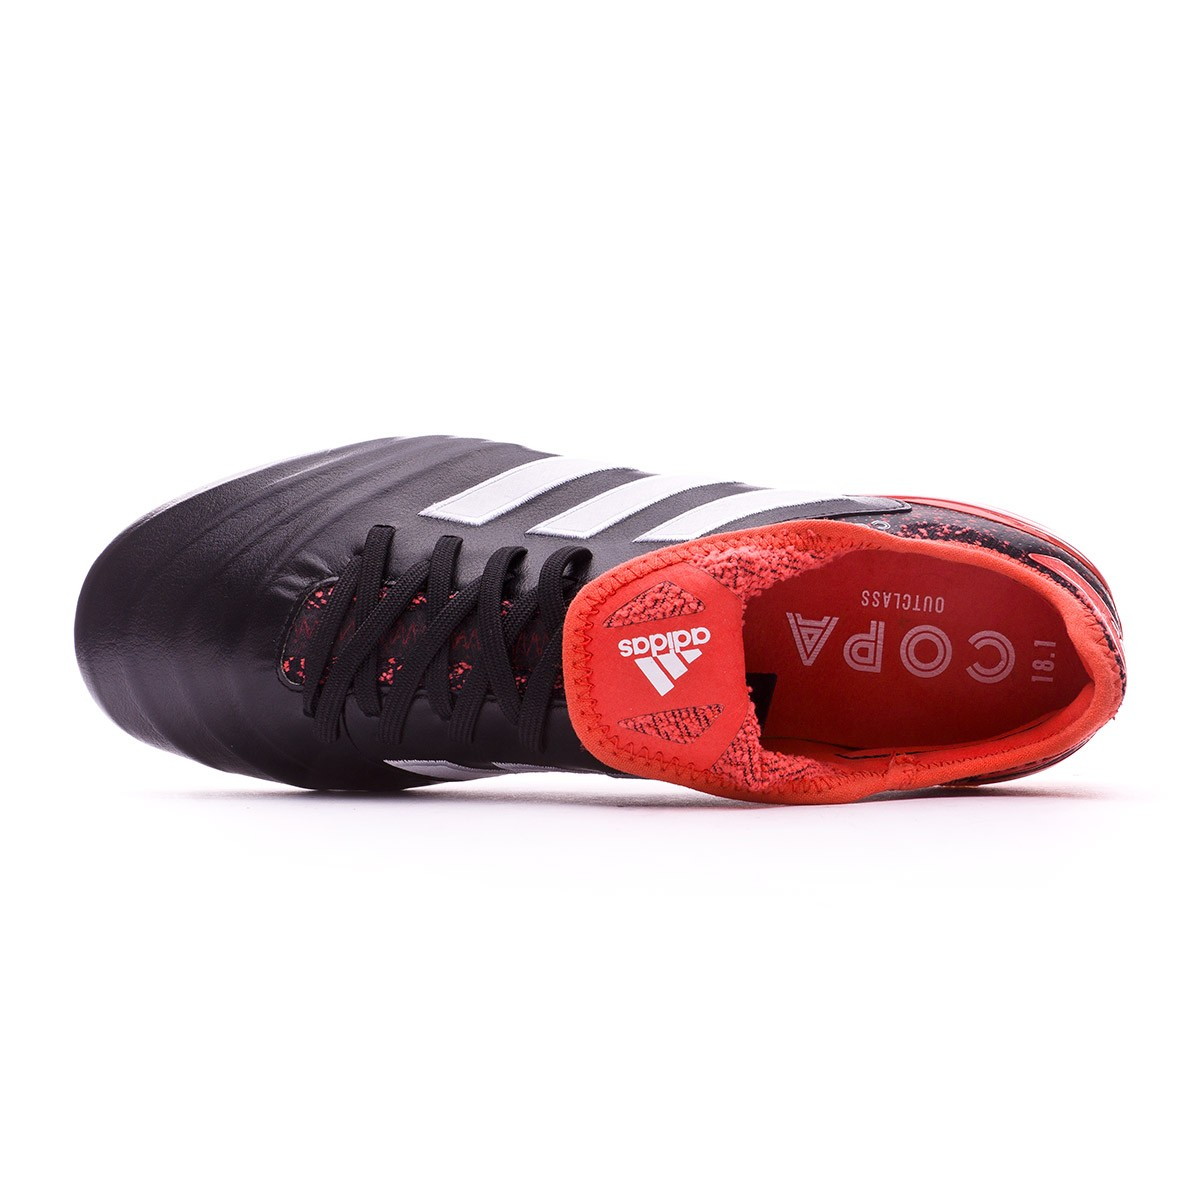 1d4127247dca Football Boots adidas Copa 18.1 FG Core black-White-Real coral - Football  store Fútbol Emotion